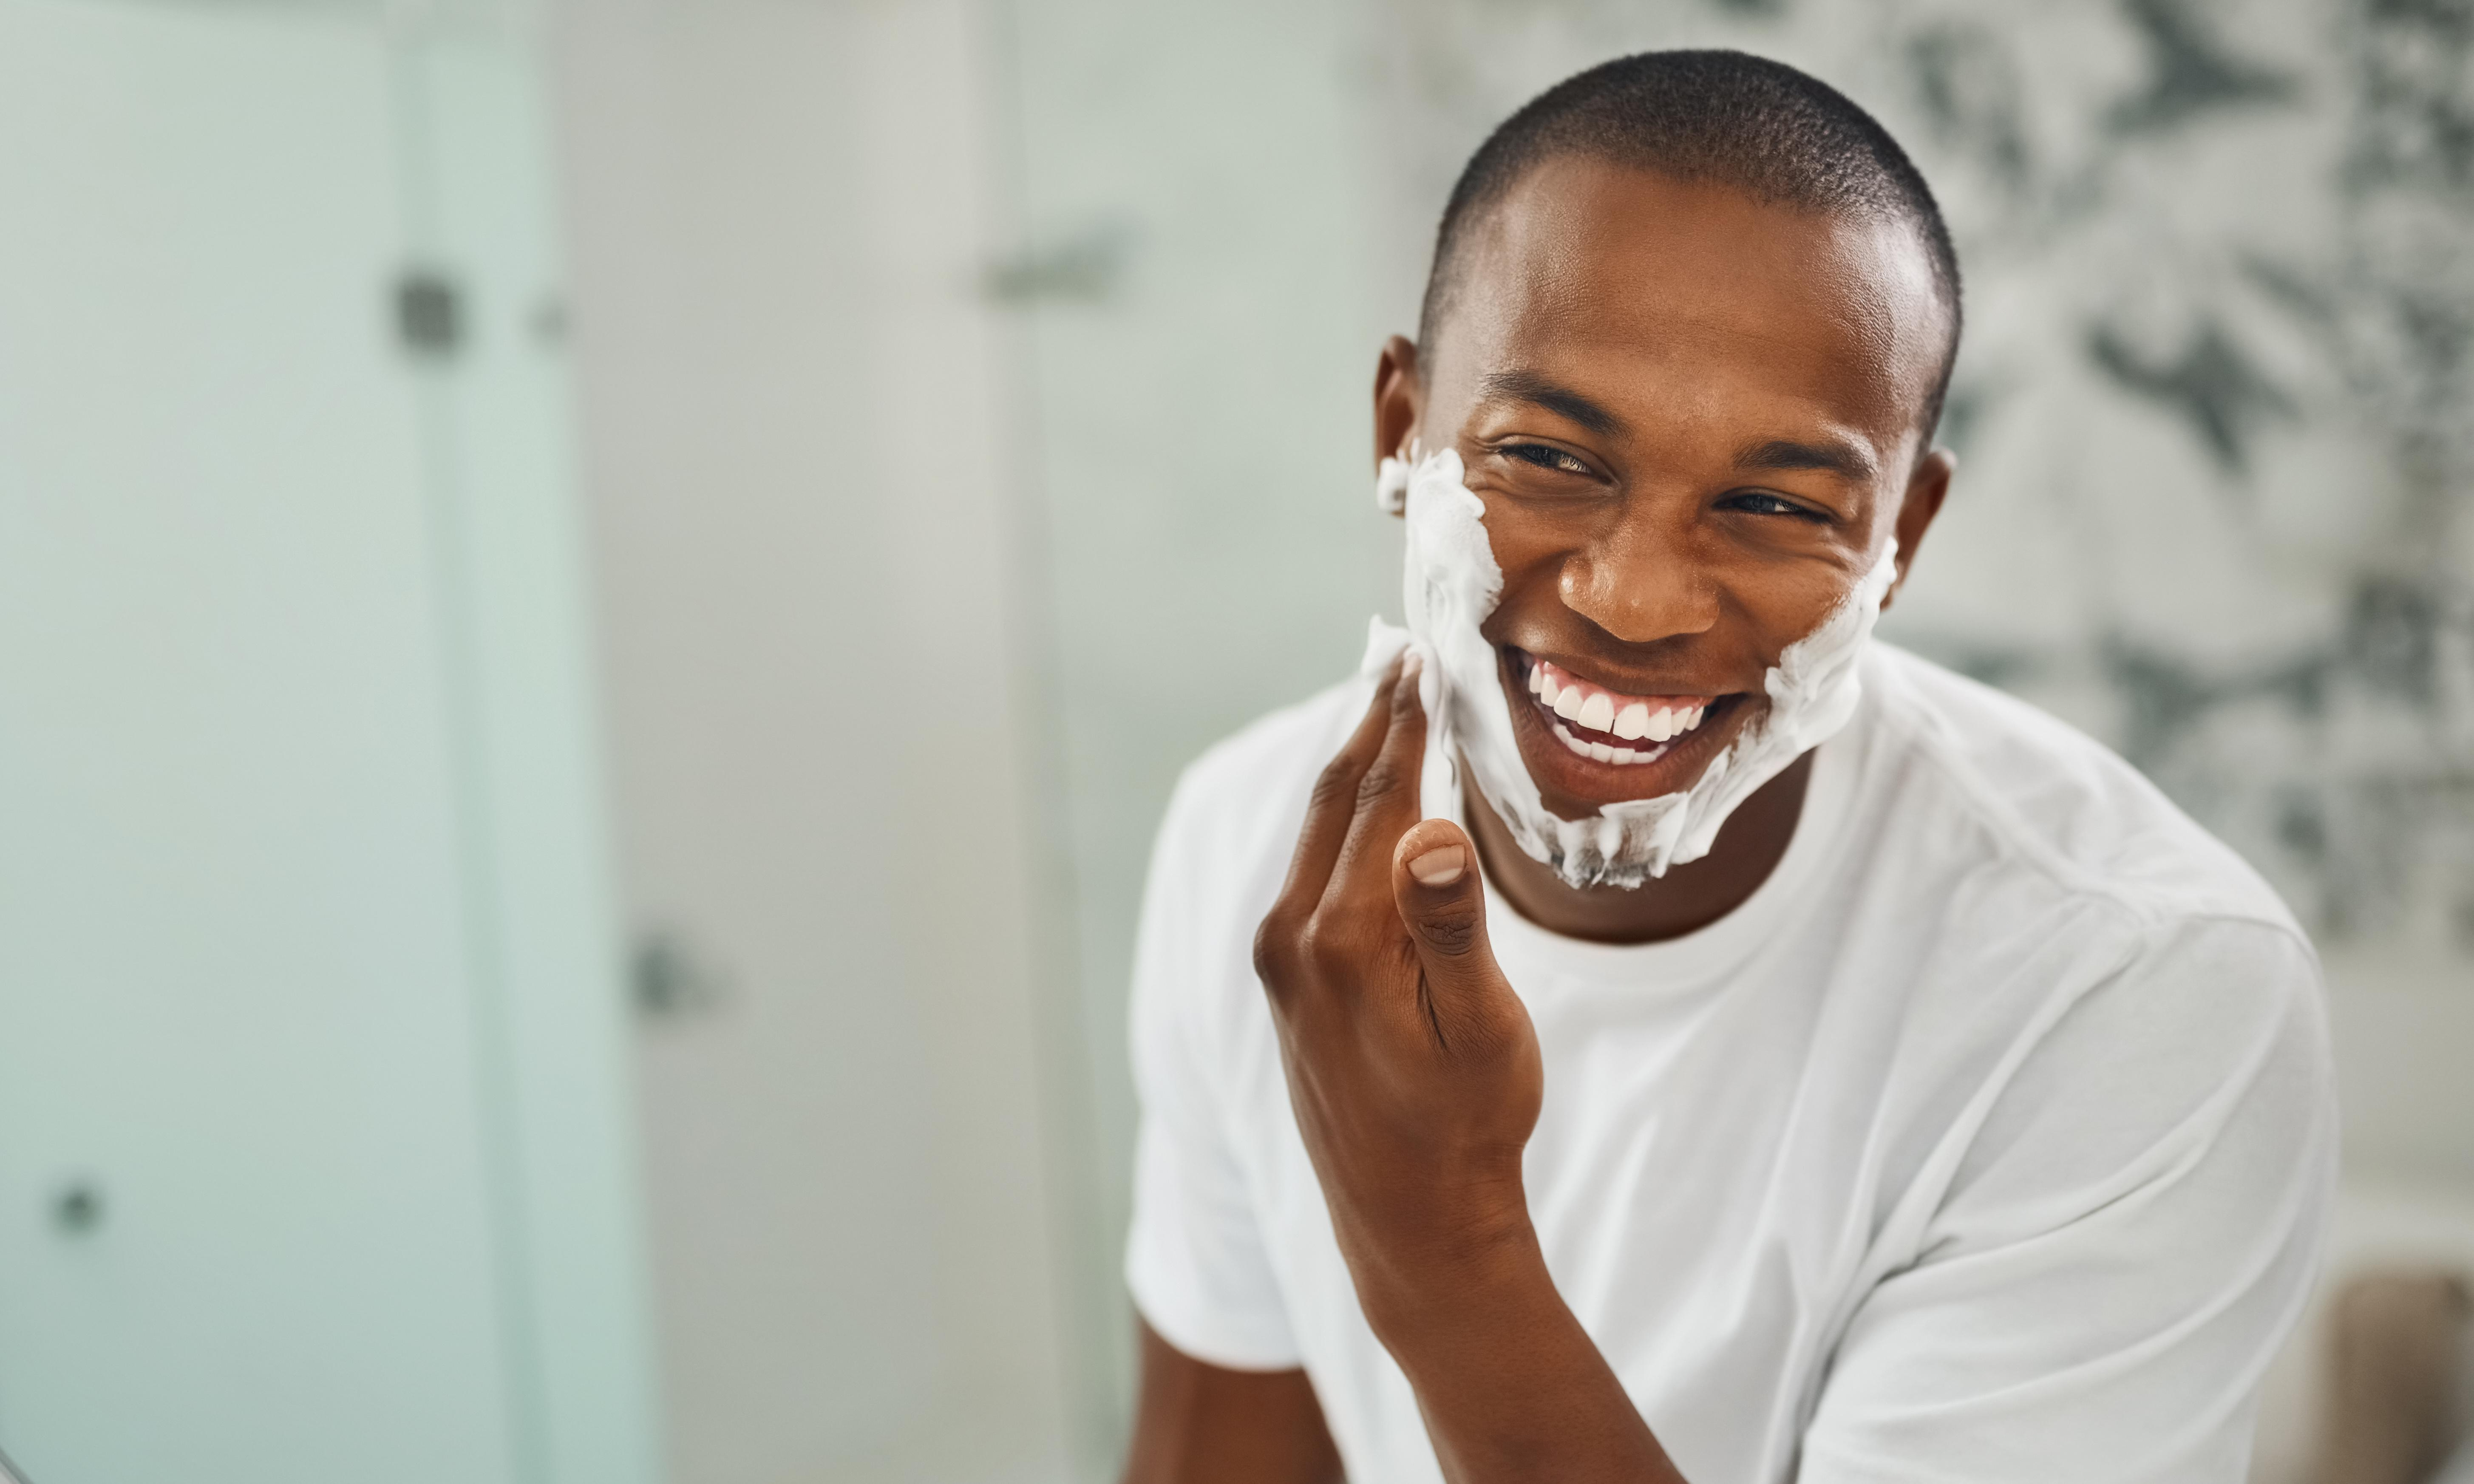 How to shave and groom male facial hair